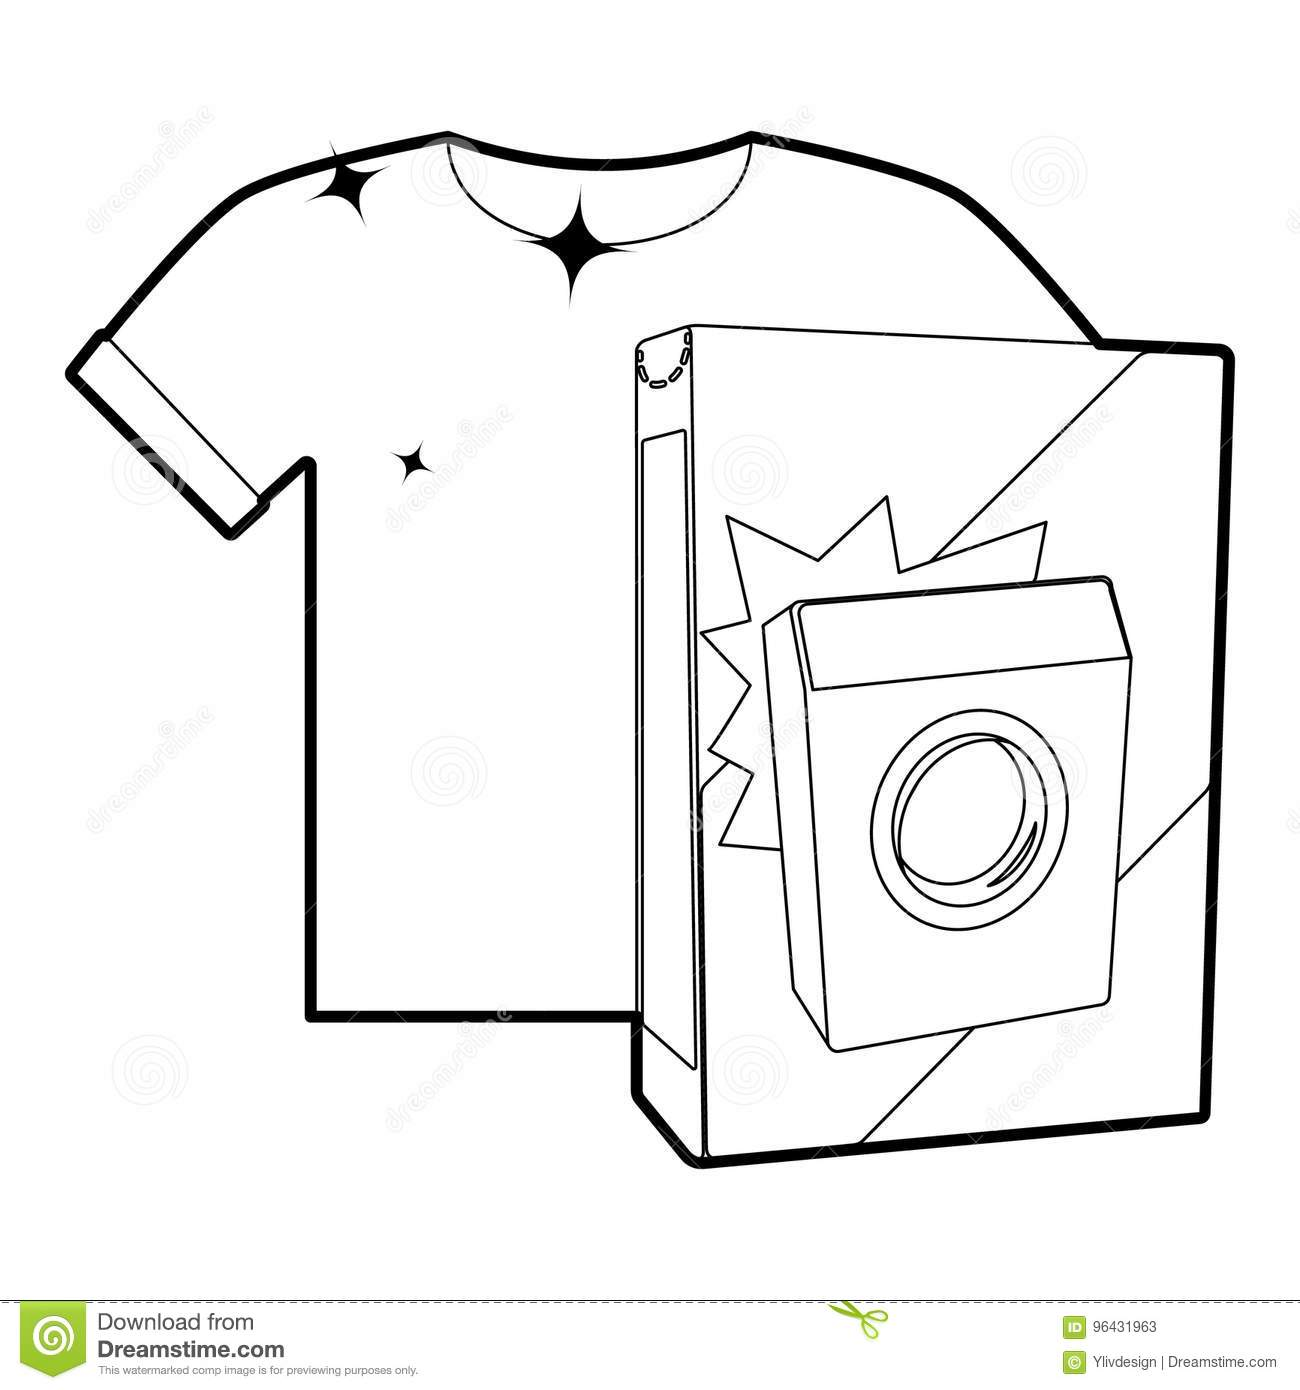 Washing Powder For Colored Things Icon Outline Stock